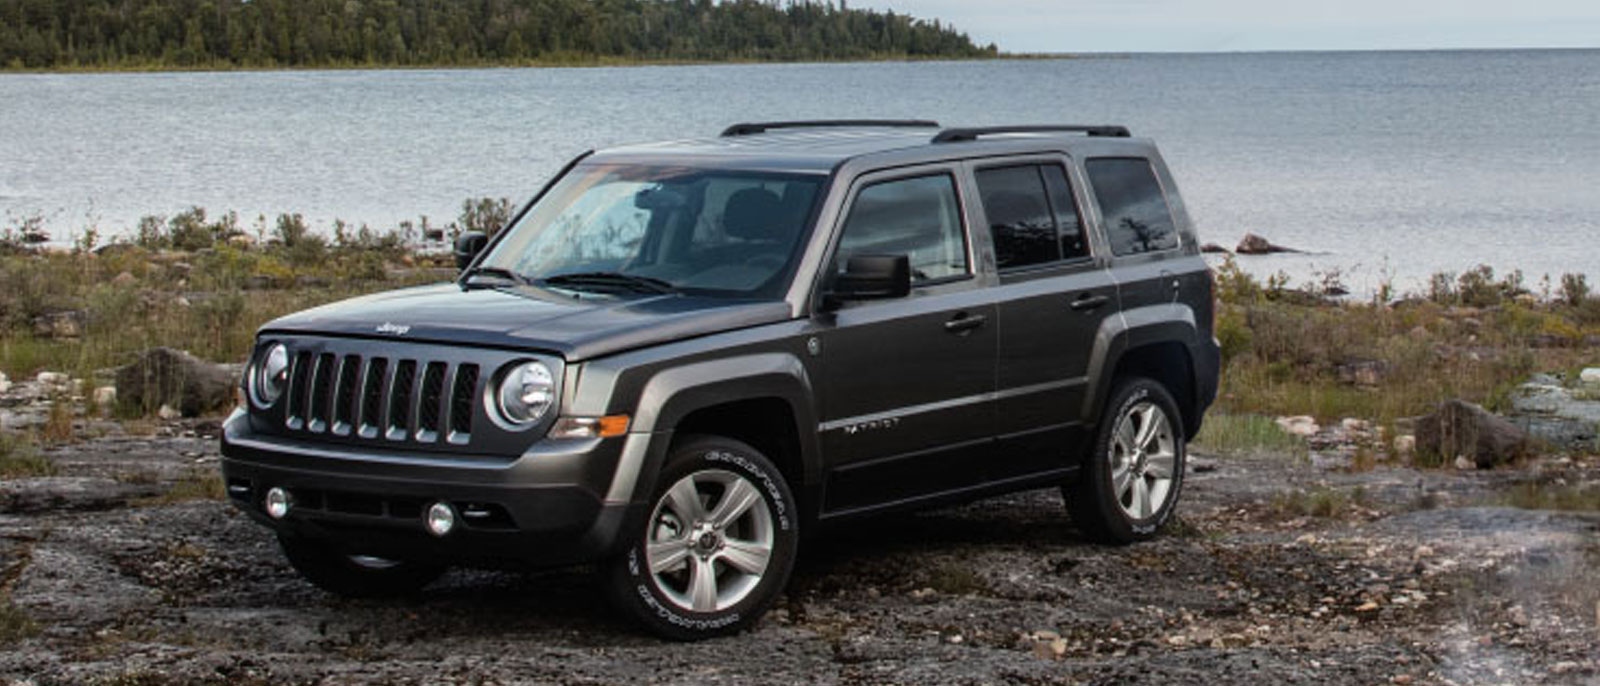 2017-jeep-patriot1